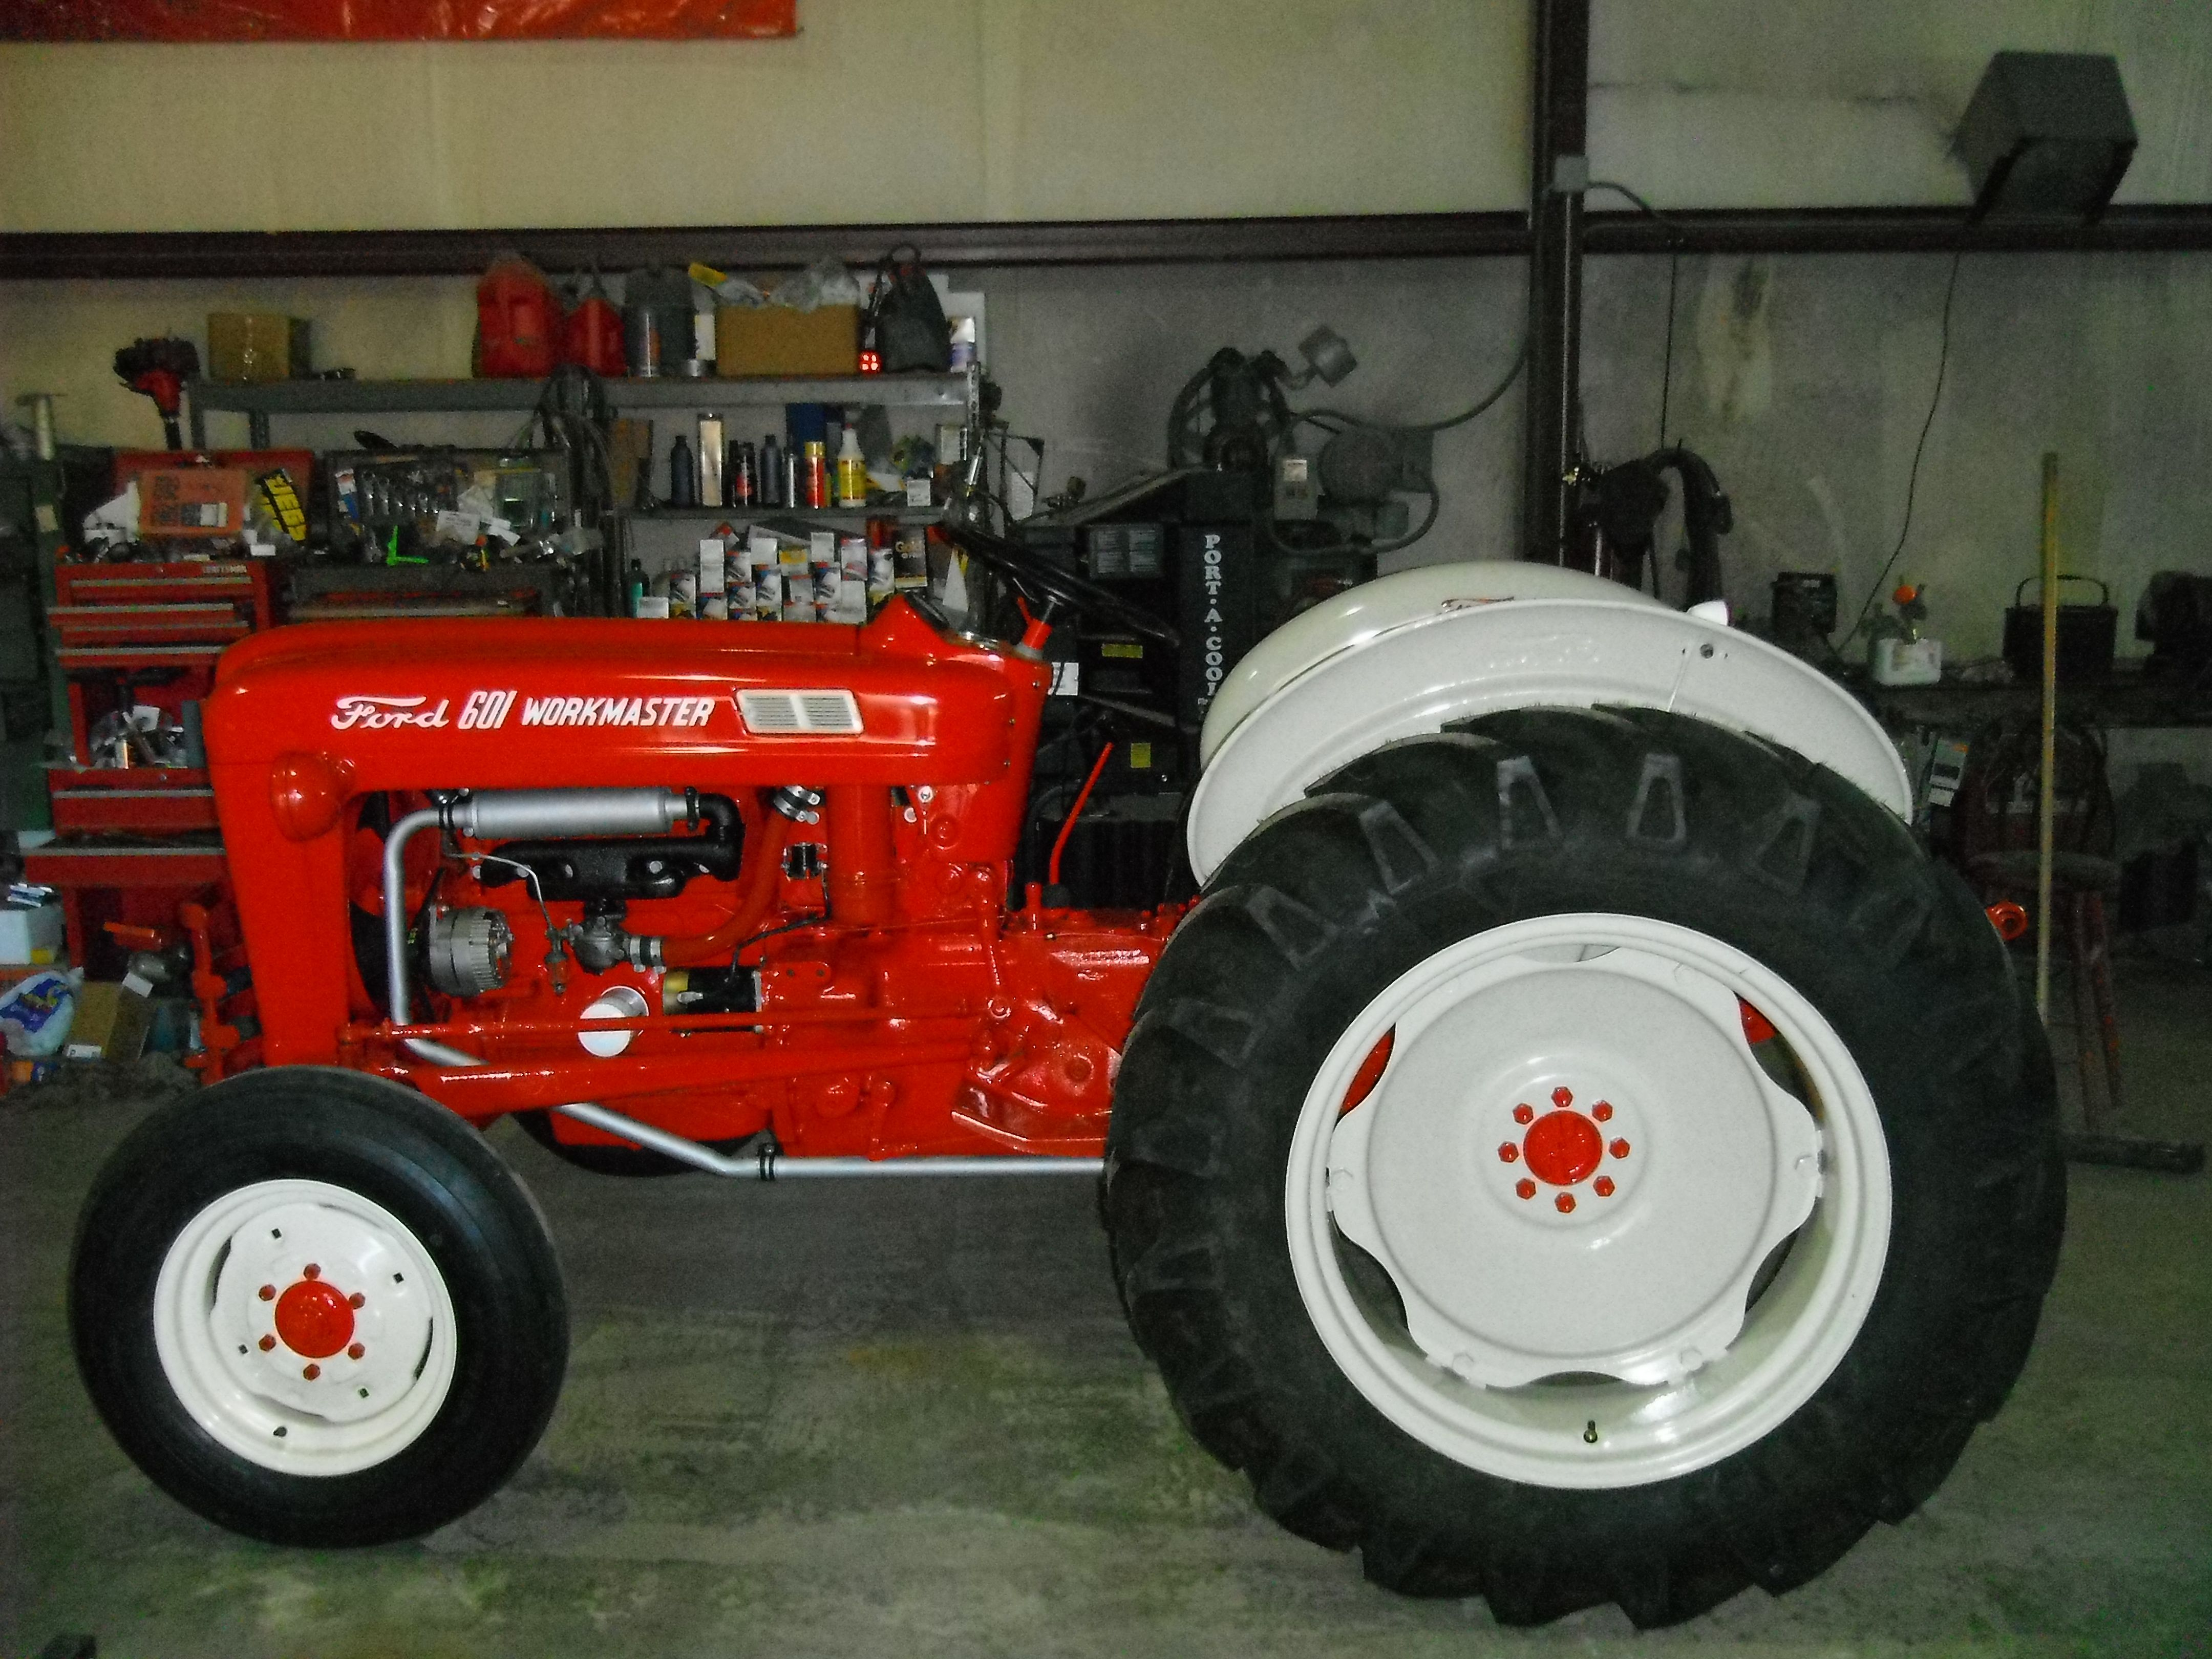 601 Ford Tractor Diesel : Ford workmaster tractors and other farm equipment